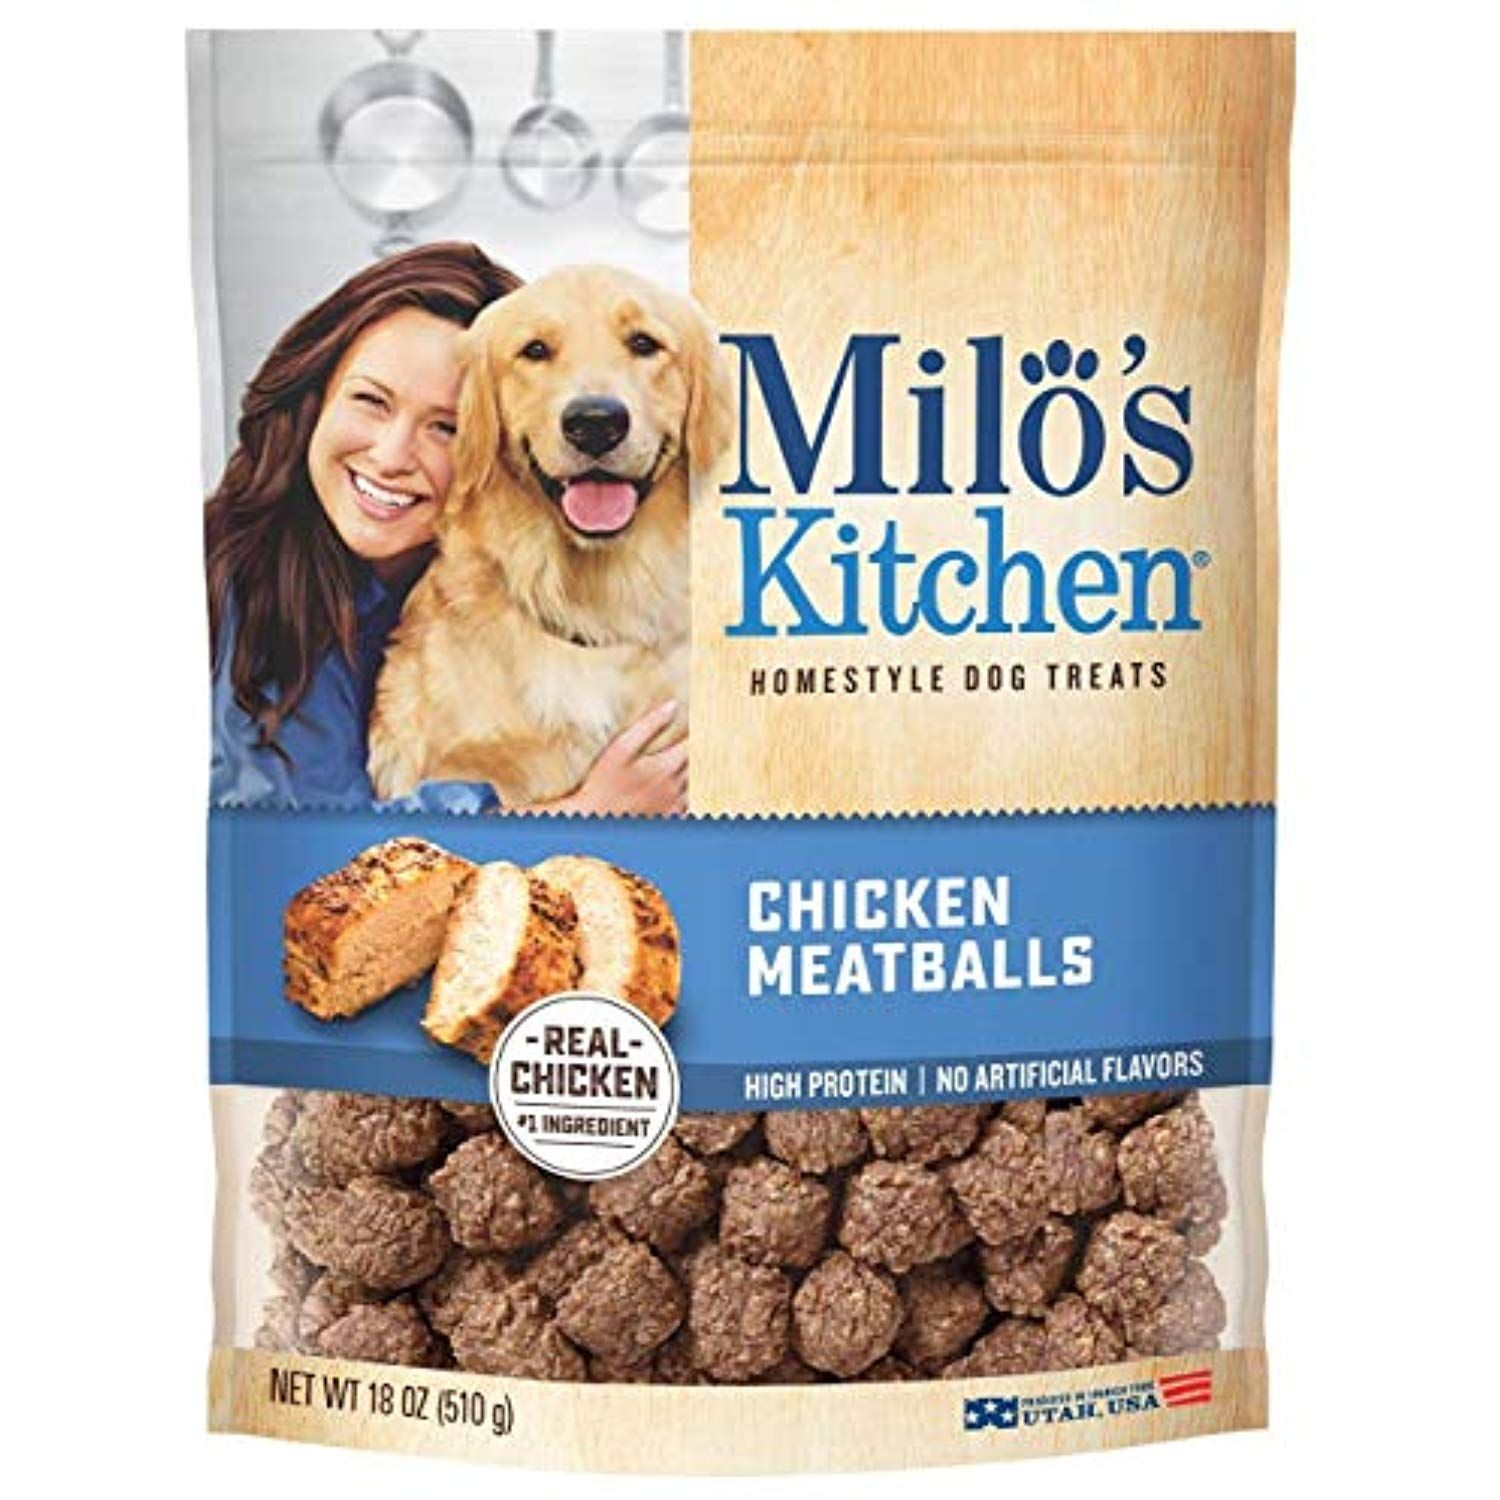 Grain Free Hypoallergenic Natural Australian Made Dog Treat Chew Kangaroo Cubes 750g//26oz Perfect for Puppies and Seniors